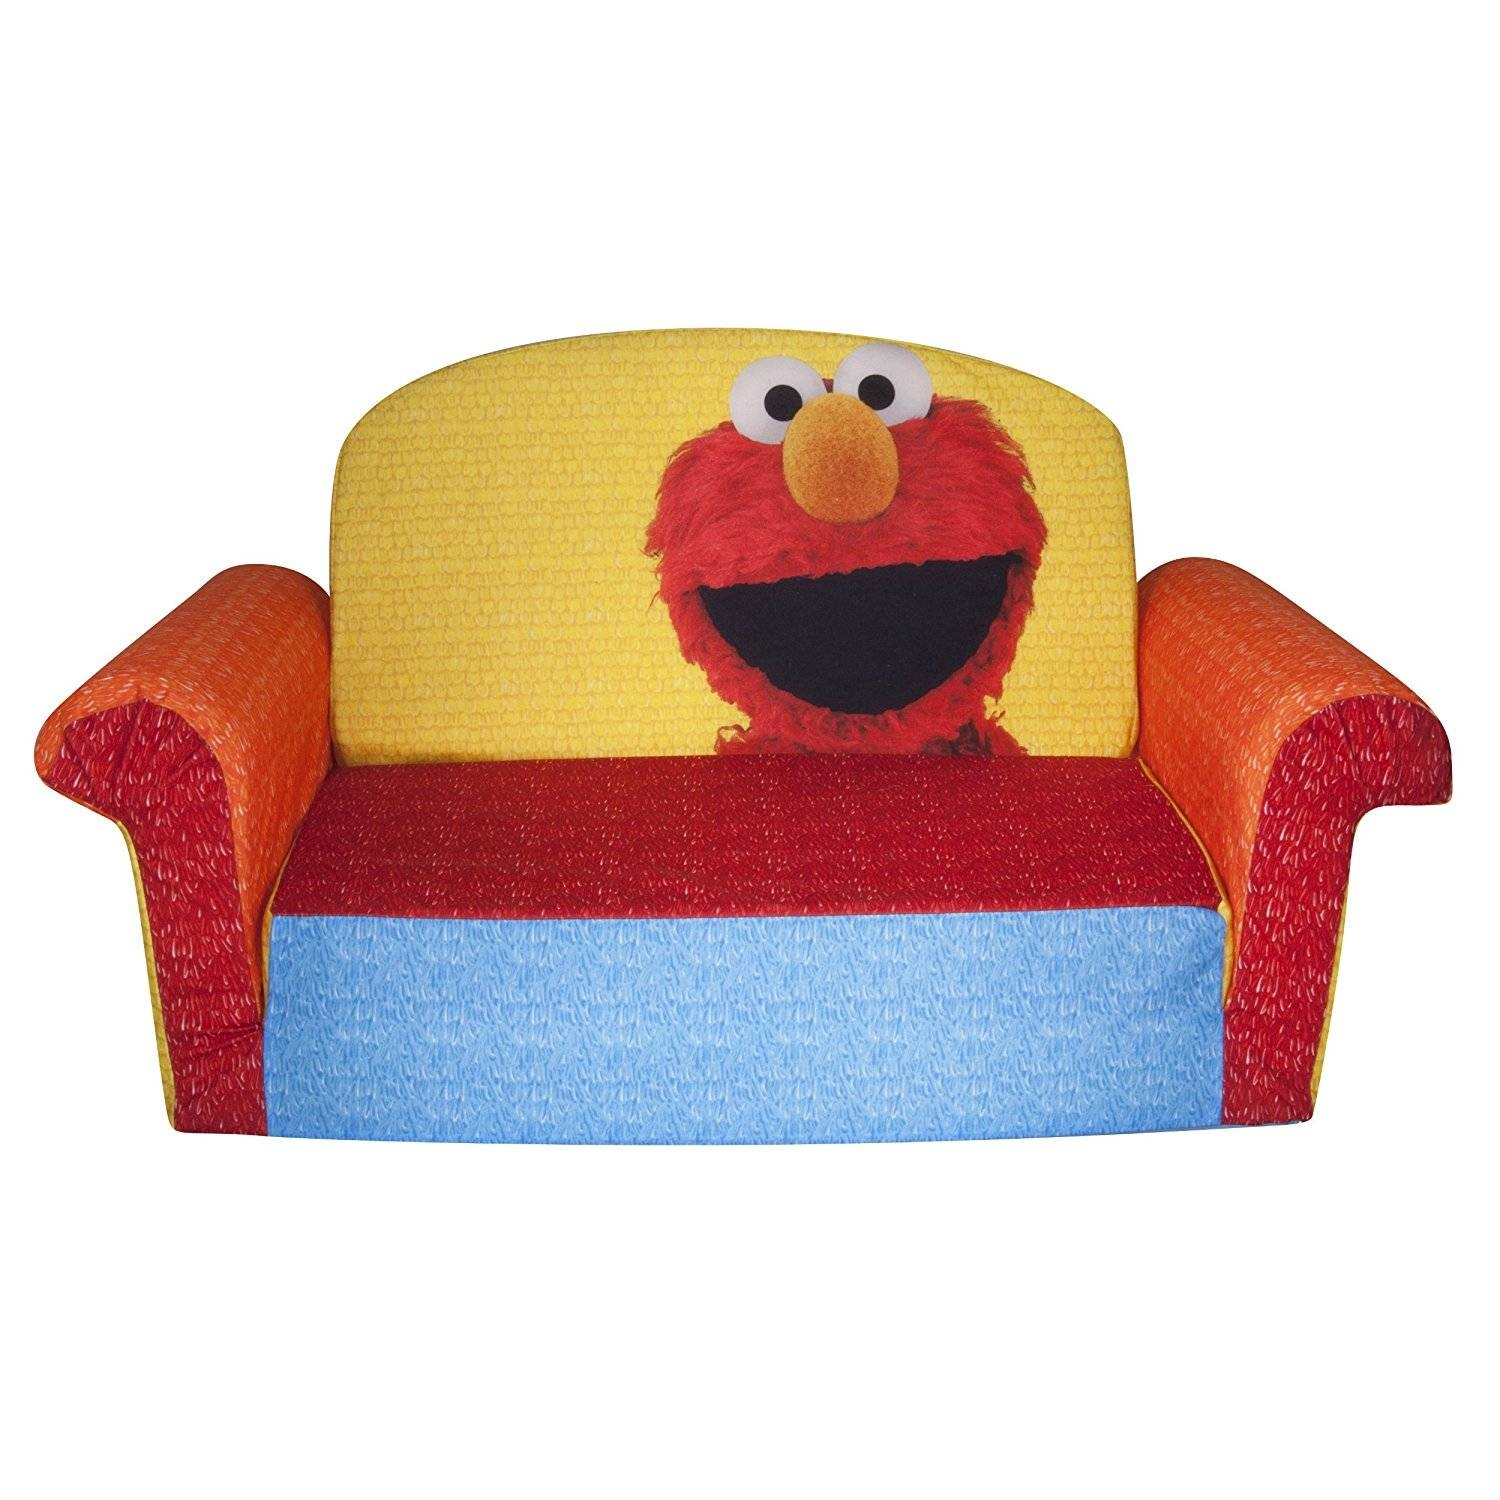 Sofas Center : Online Get Cheap Kids Sofa Chair Aliexpress Com throughout Cheap Kids Sofas (Image 24 of 30)